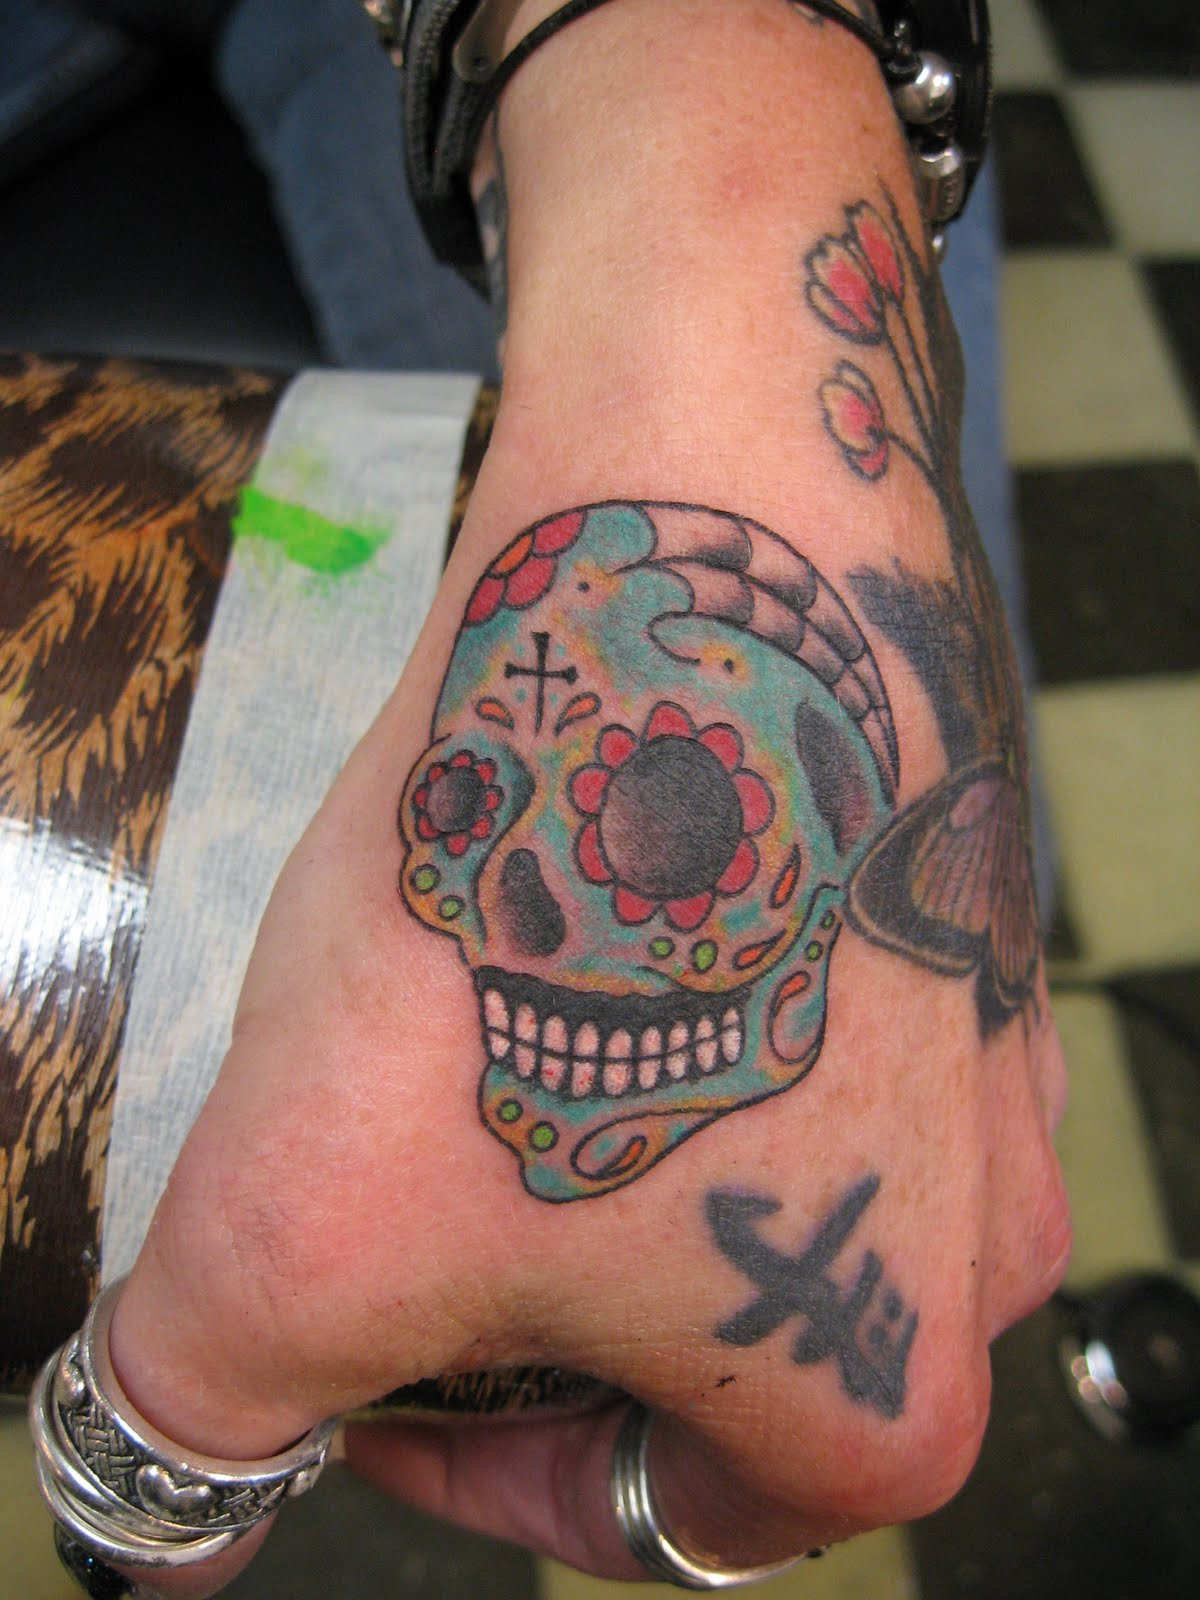 Superior tattoo skull tattoosa little history with photos and sugar skull day of the dead skull by russell fortier lucky 7 tattoo in kings beach north lake tahoe california biocorpaavc Images